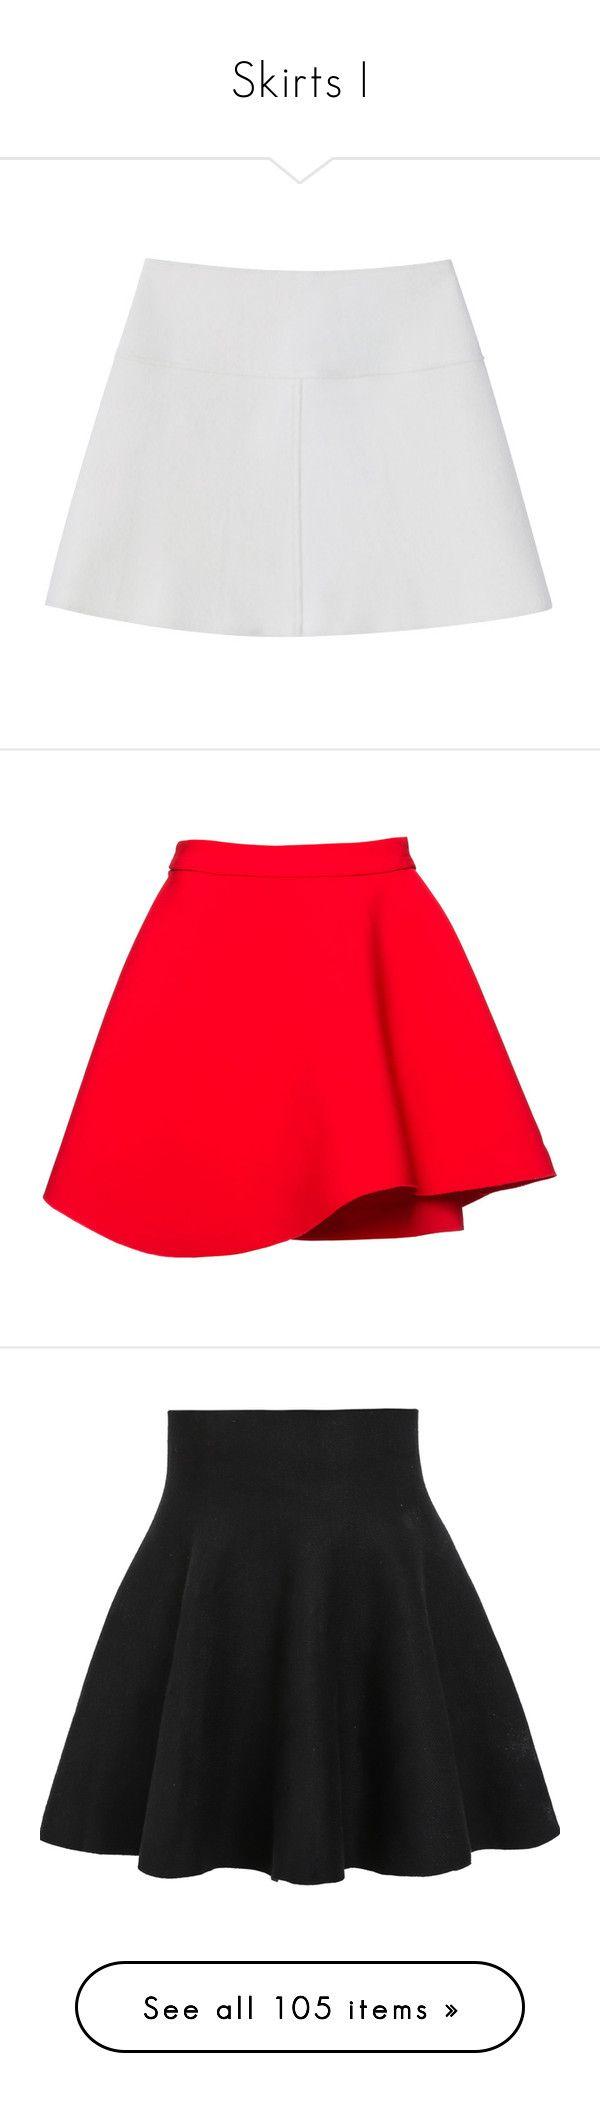 """Skirts I"" by yendry-mariela-garcia-perez ❤ liked on Polyvore featuring skirts, bottoms, saias, gonne, women, red flared skirt, red circle skirt, red pencil skirt, pencil skirt and red asymmetrical skirt"